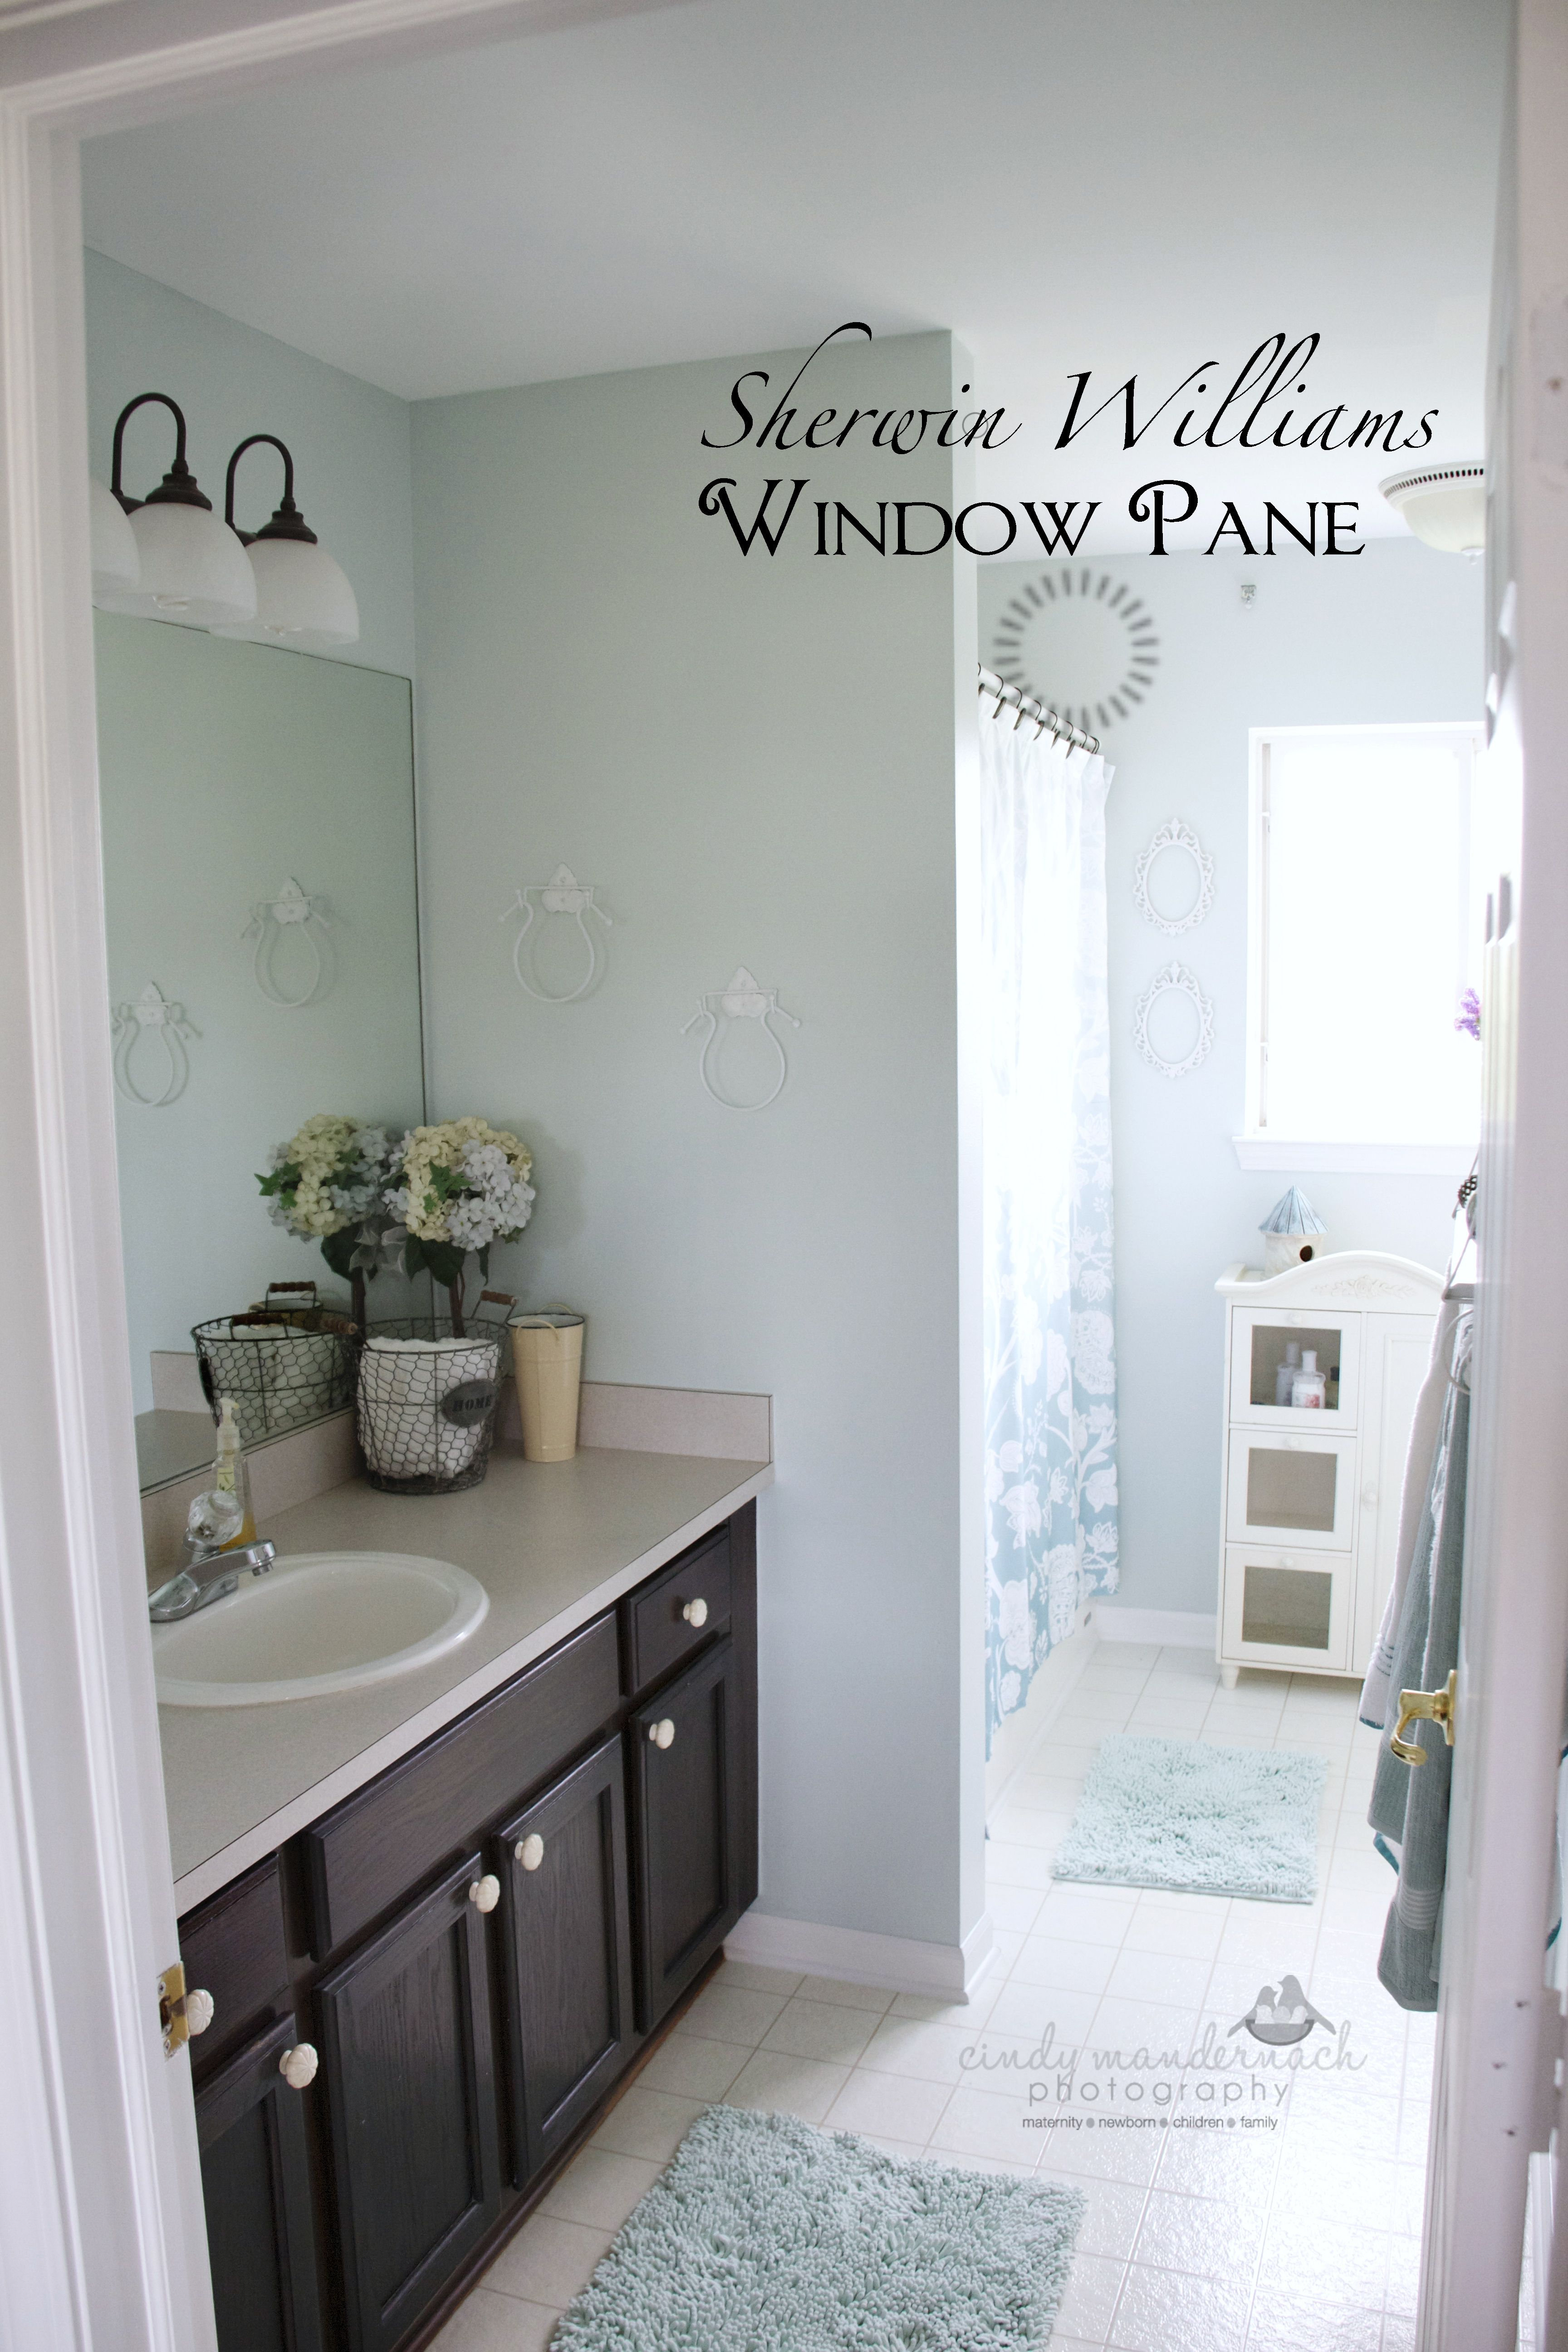 Sherwin Williams Windowpane Paint Color In My Master Bath